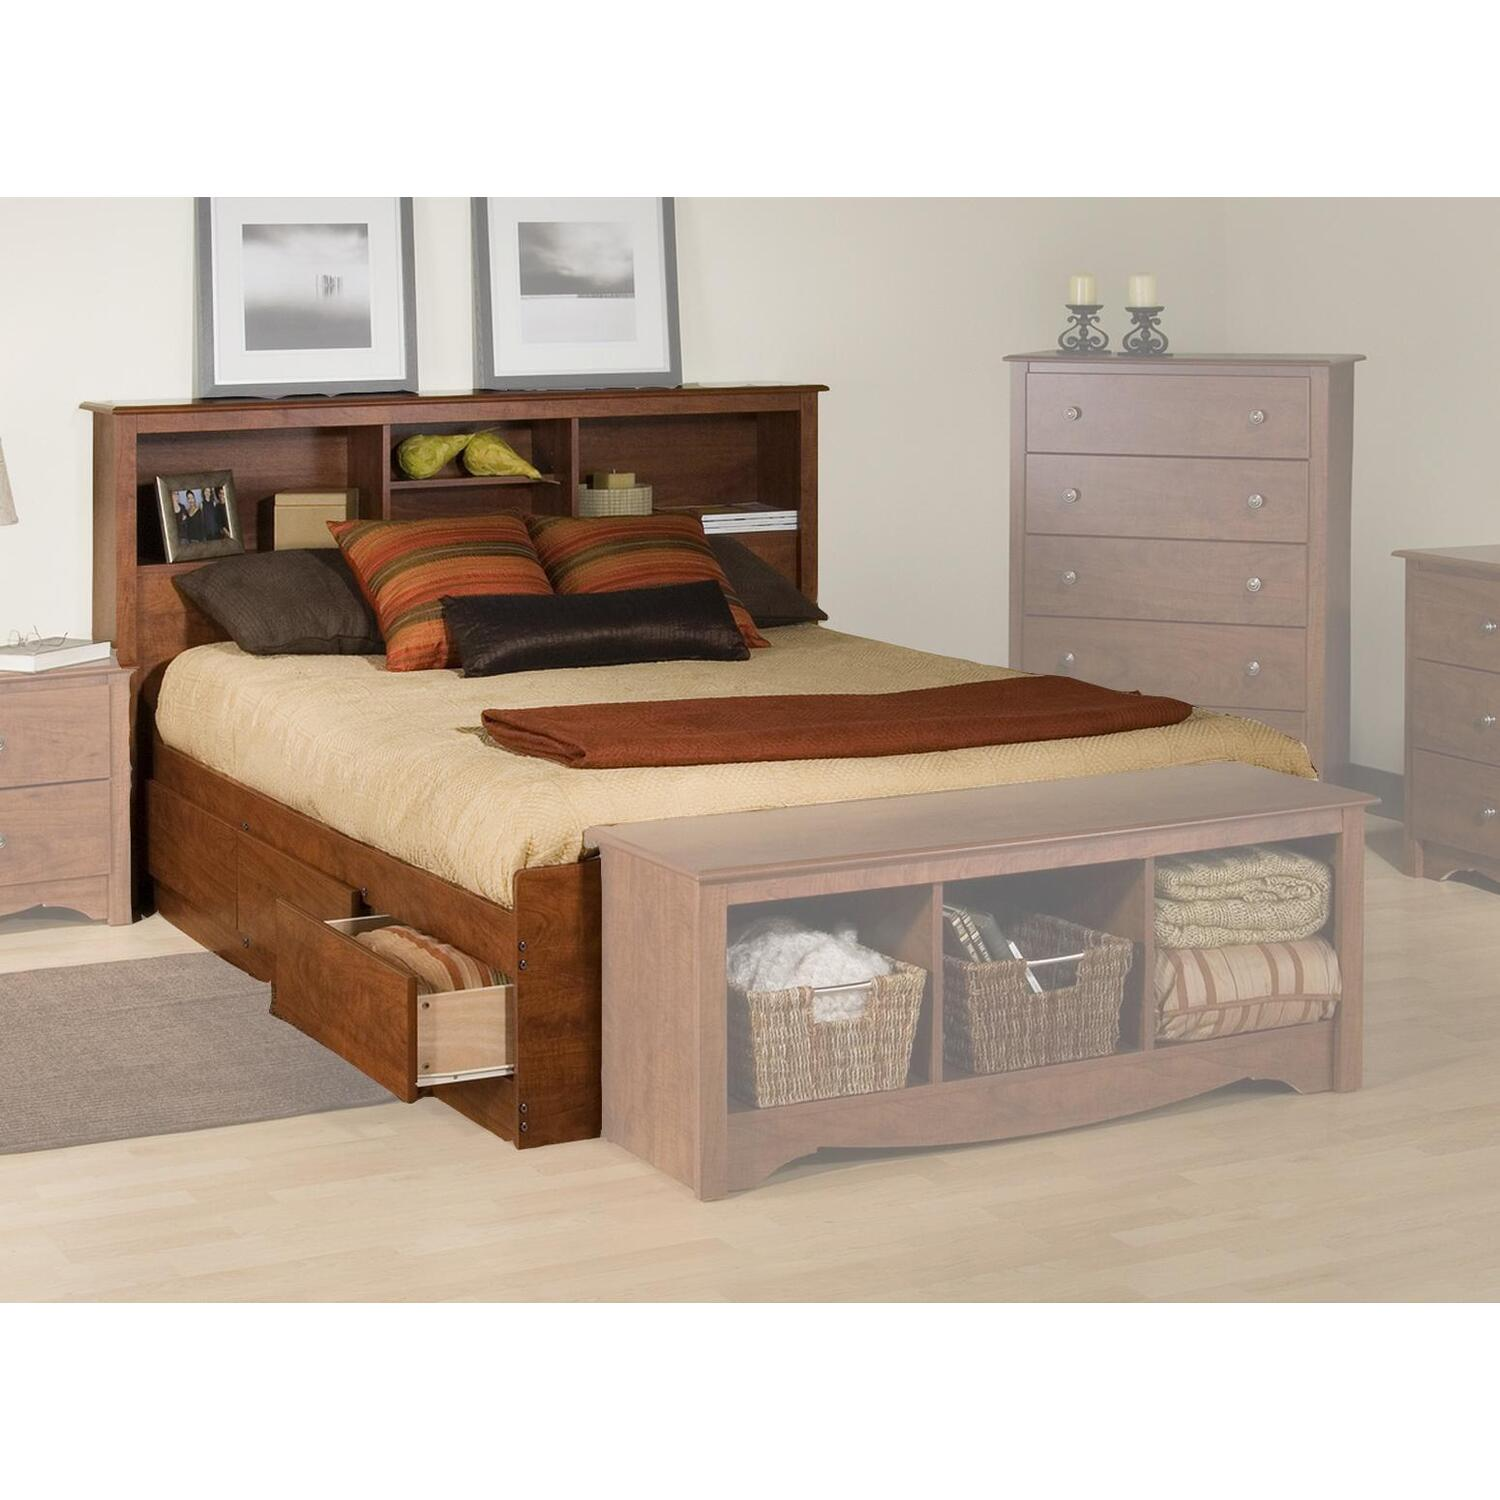 Platform Storage Bed W Bookcase Headboard